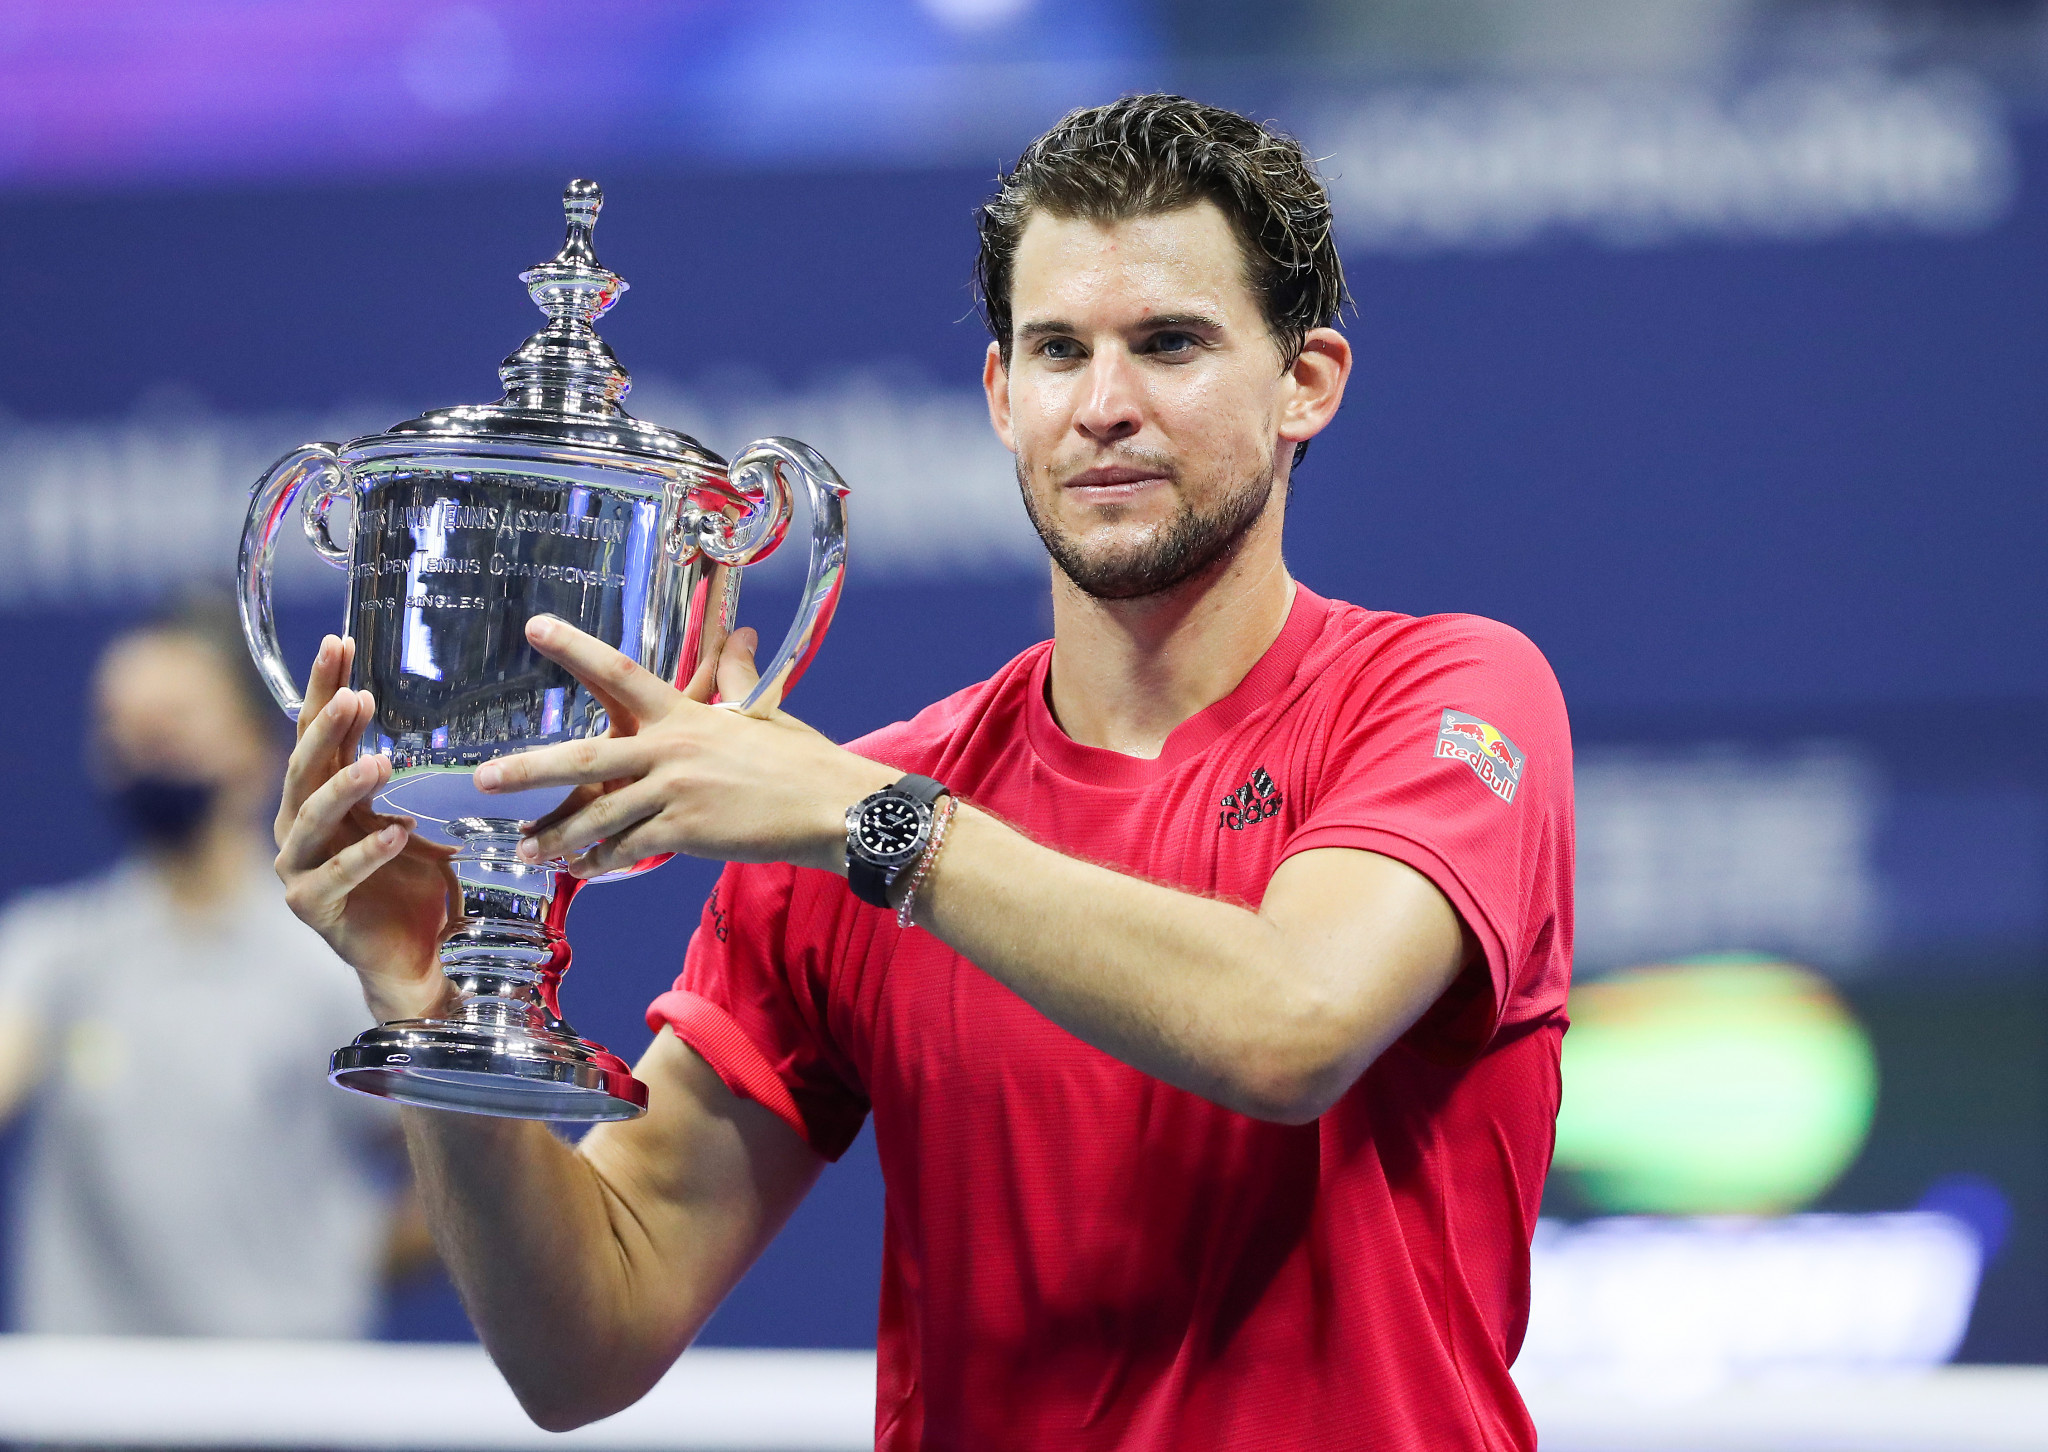 Thiem wins first Grand Slam in five-set comeback at US Open